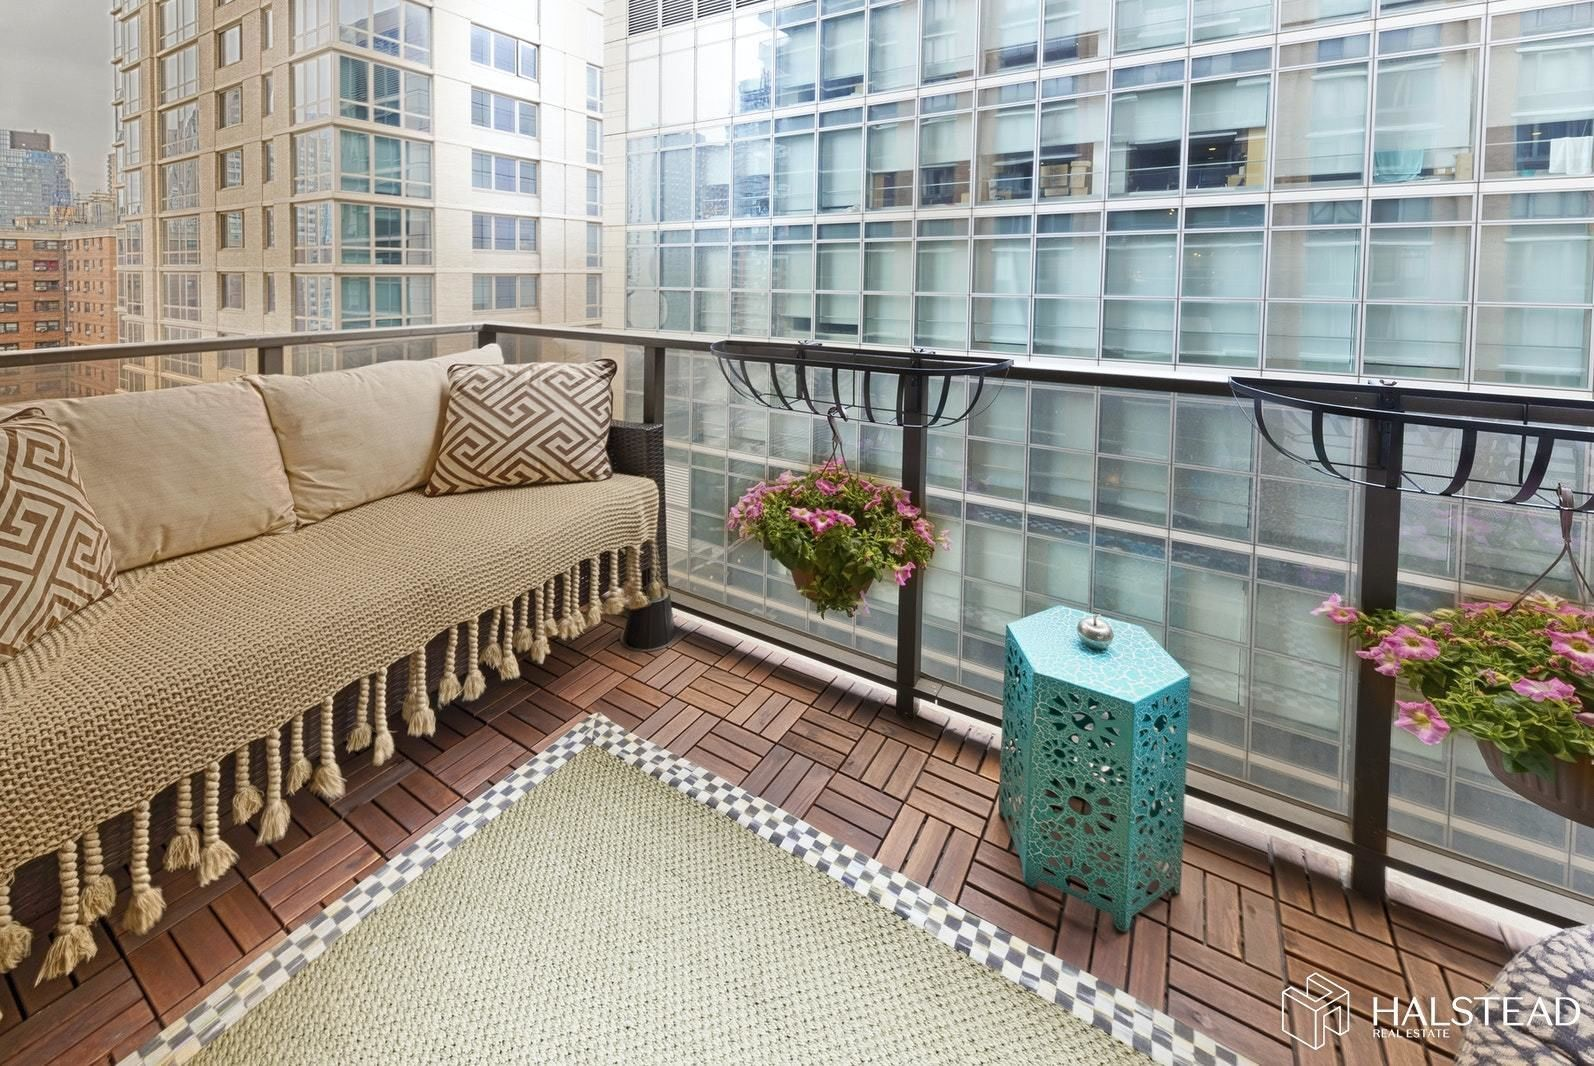 Apartment for sale at 161 West 61st Street, Apt 10E